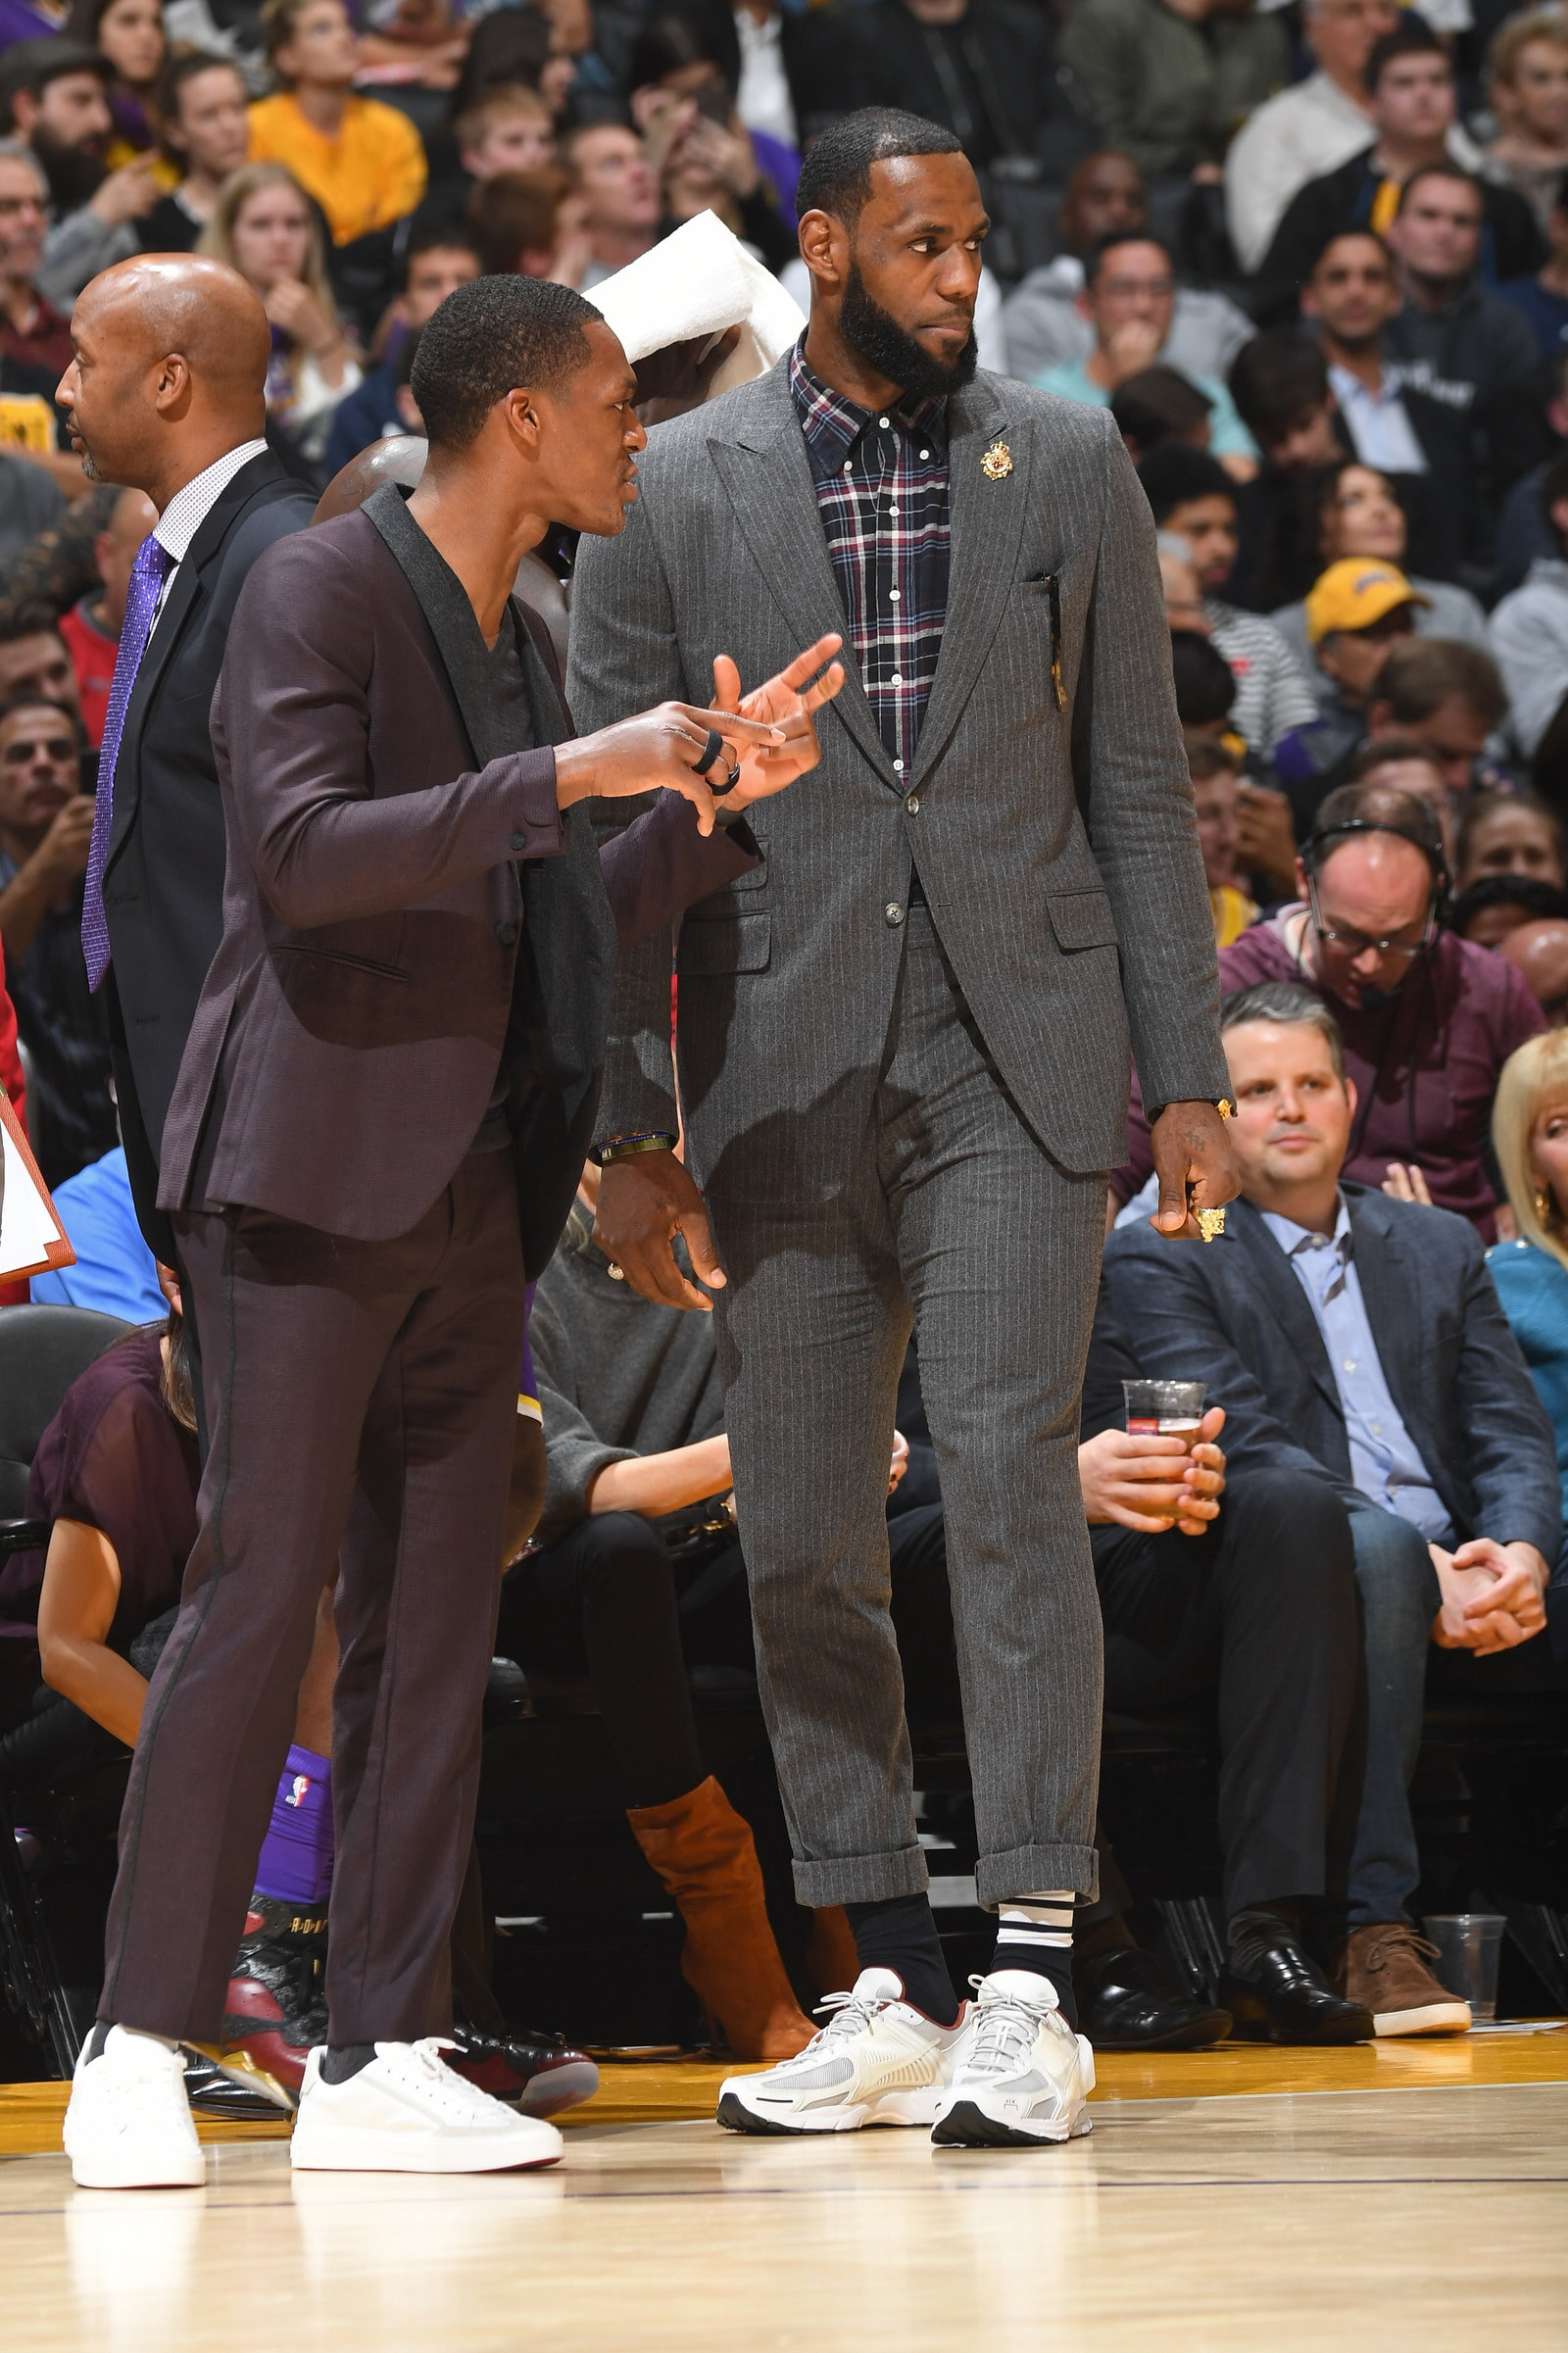 Lebron and Rajon Rondo talk courtside during Lakers game.